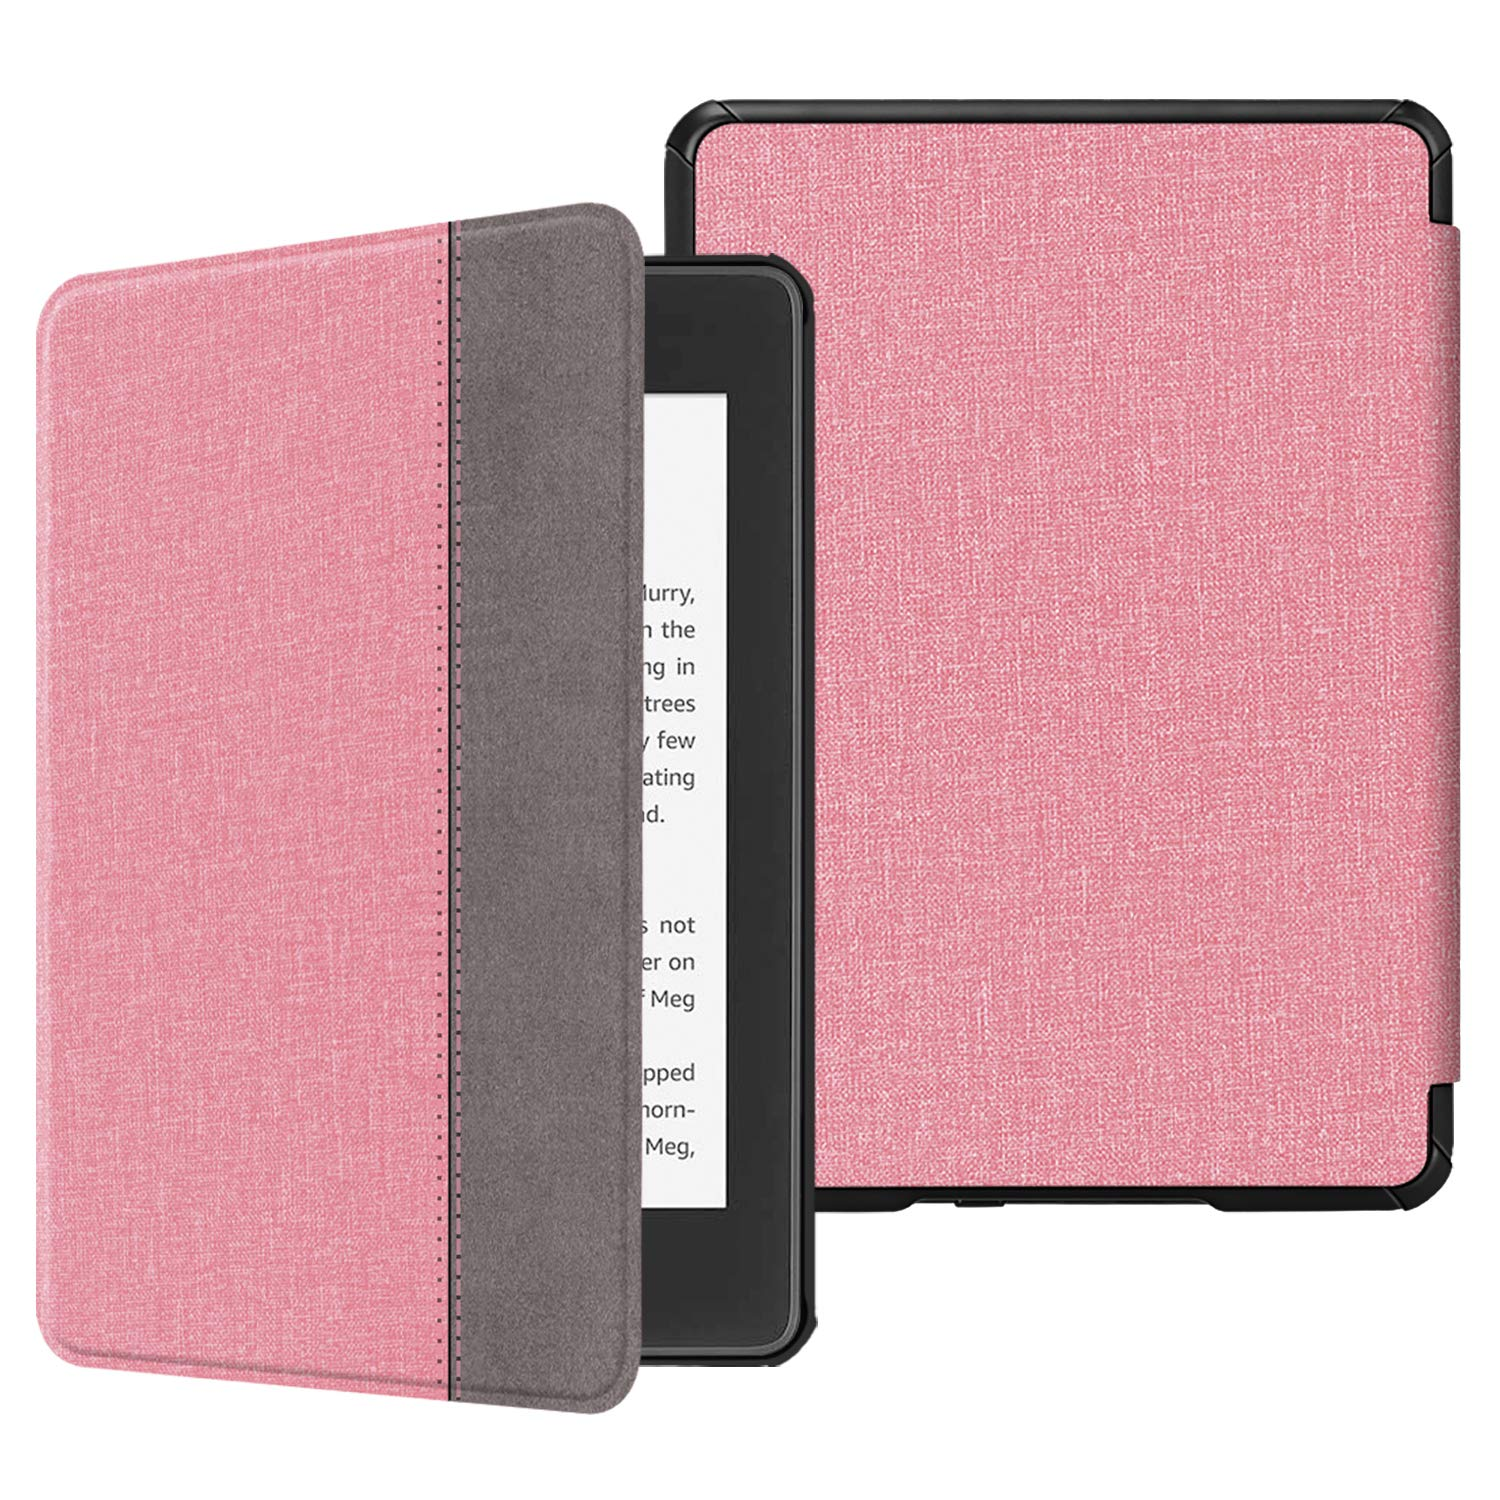 Fintie Slimshell Case for All-New Kindle Paperwhite (10th Generation, 2018 Release) - Premium Lightweight PU Leather Cover with Auto Sleep/Wake for Amazon Kindle Paperwhite E-Reader, Pink/Brown